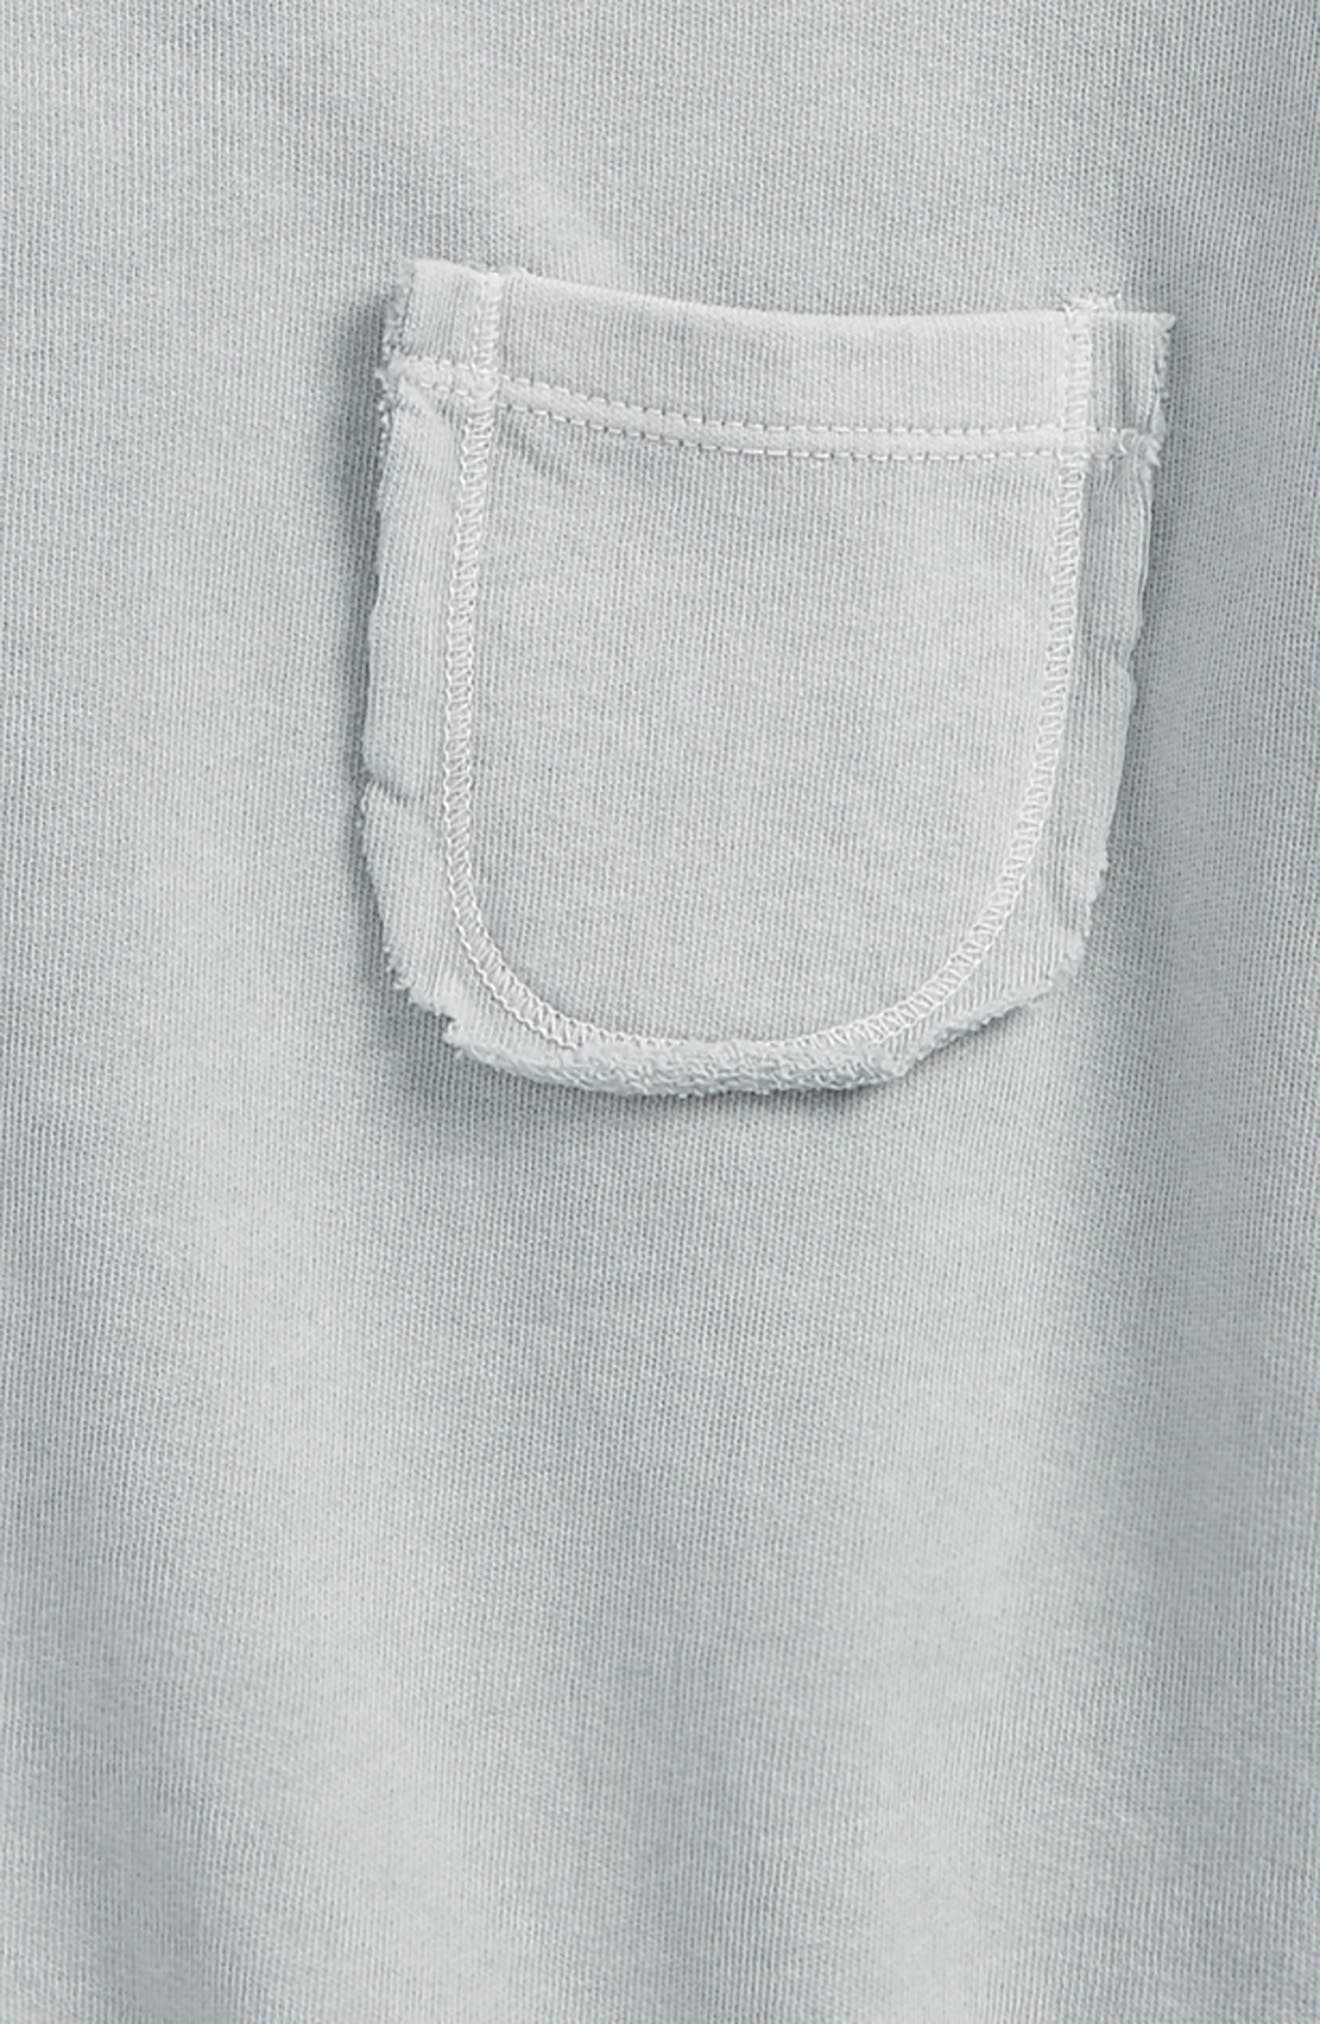 Pocket Sweatshirt,                             Alternate thumbnail 2, color,                             Blue Fog Wash